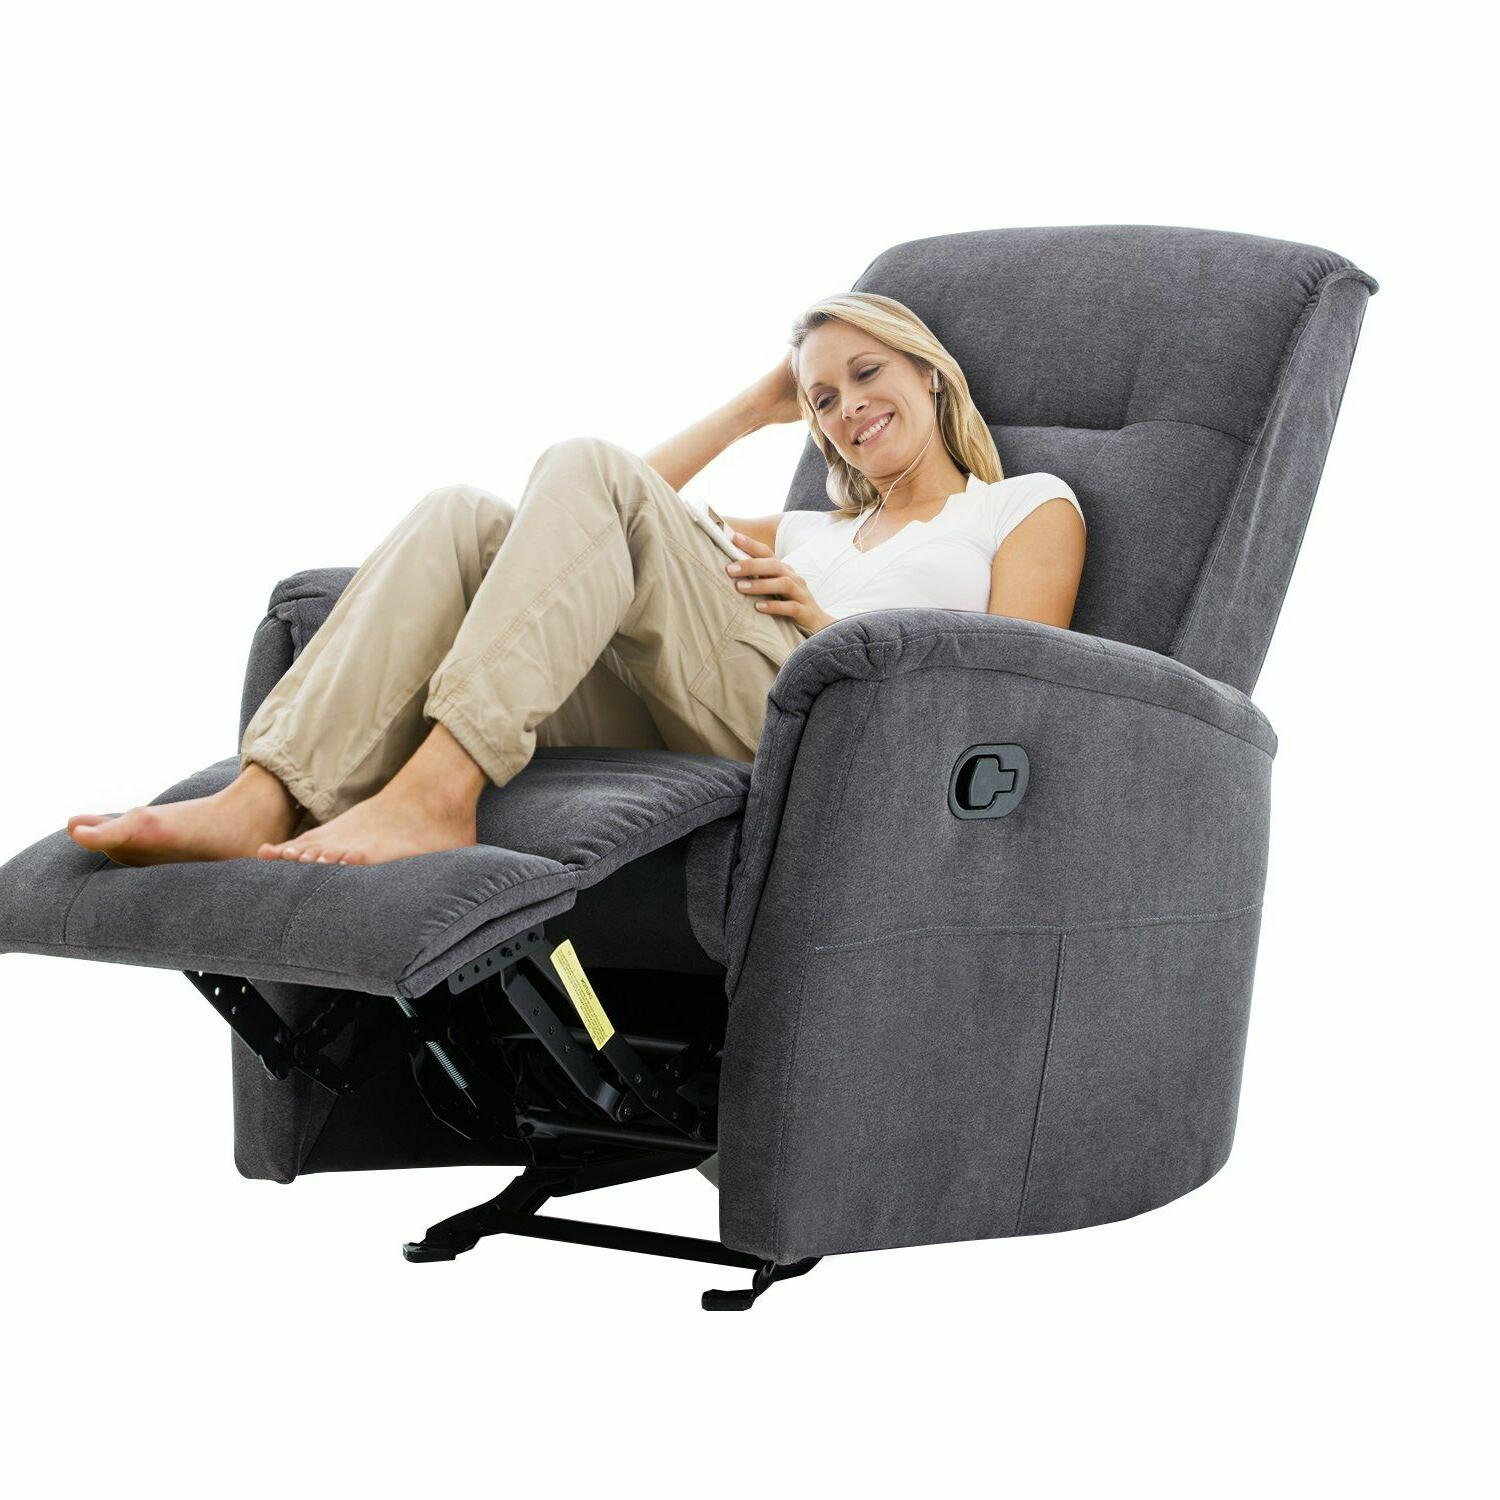 Comfy Recliner Sofa Living Room Chair Rocking Chair Gliding